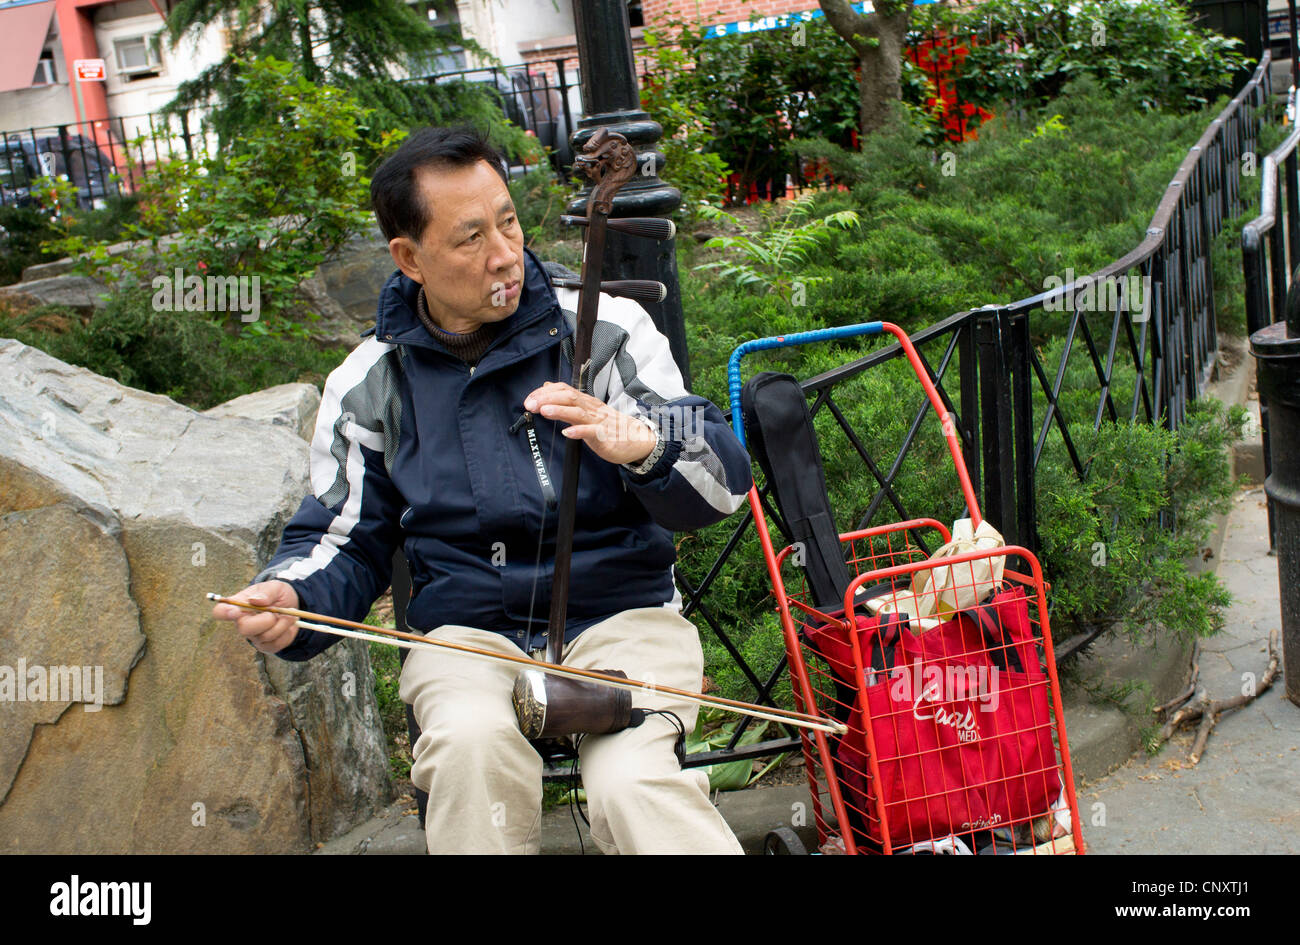 An Asian erhu player in Columbus Park in Chinatown, New York City. - Stock Image